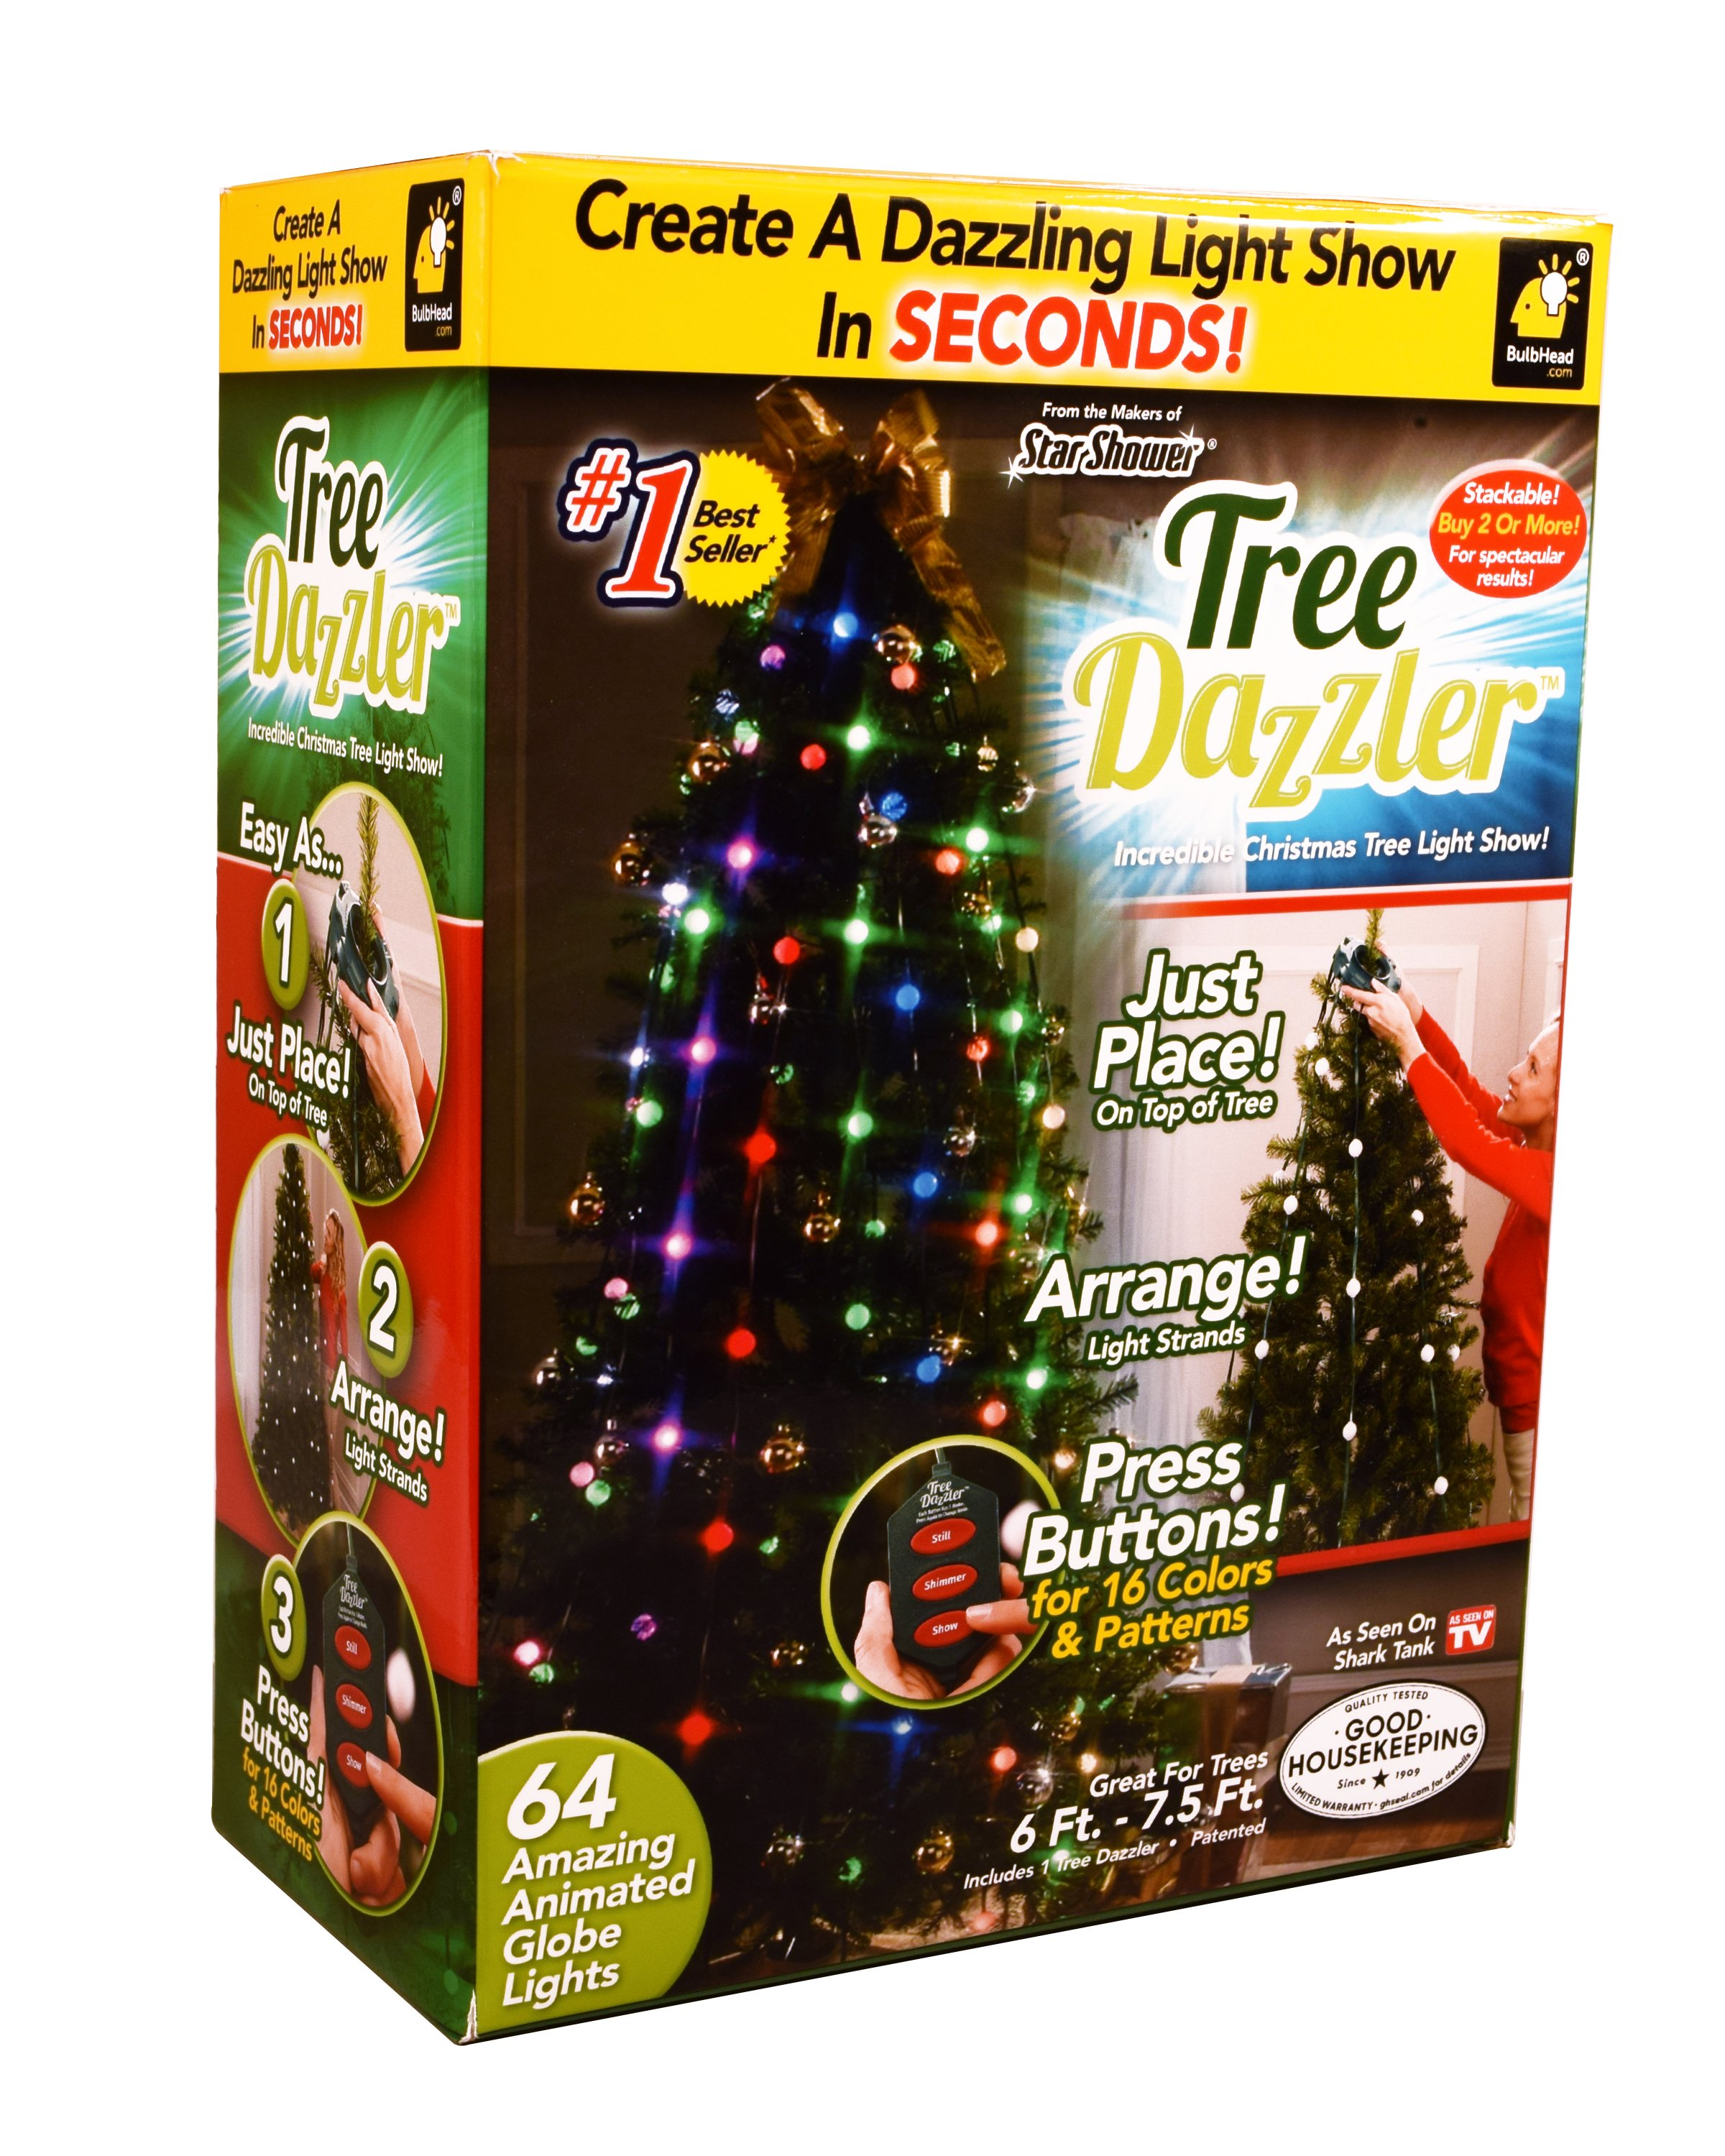 Captivating Tree Dazzler As Seen On TV/Shark Tank Christmas LED Lights Plastic Pictures